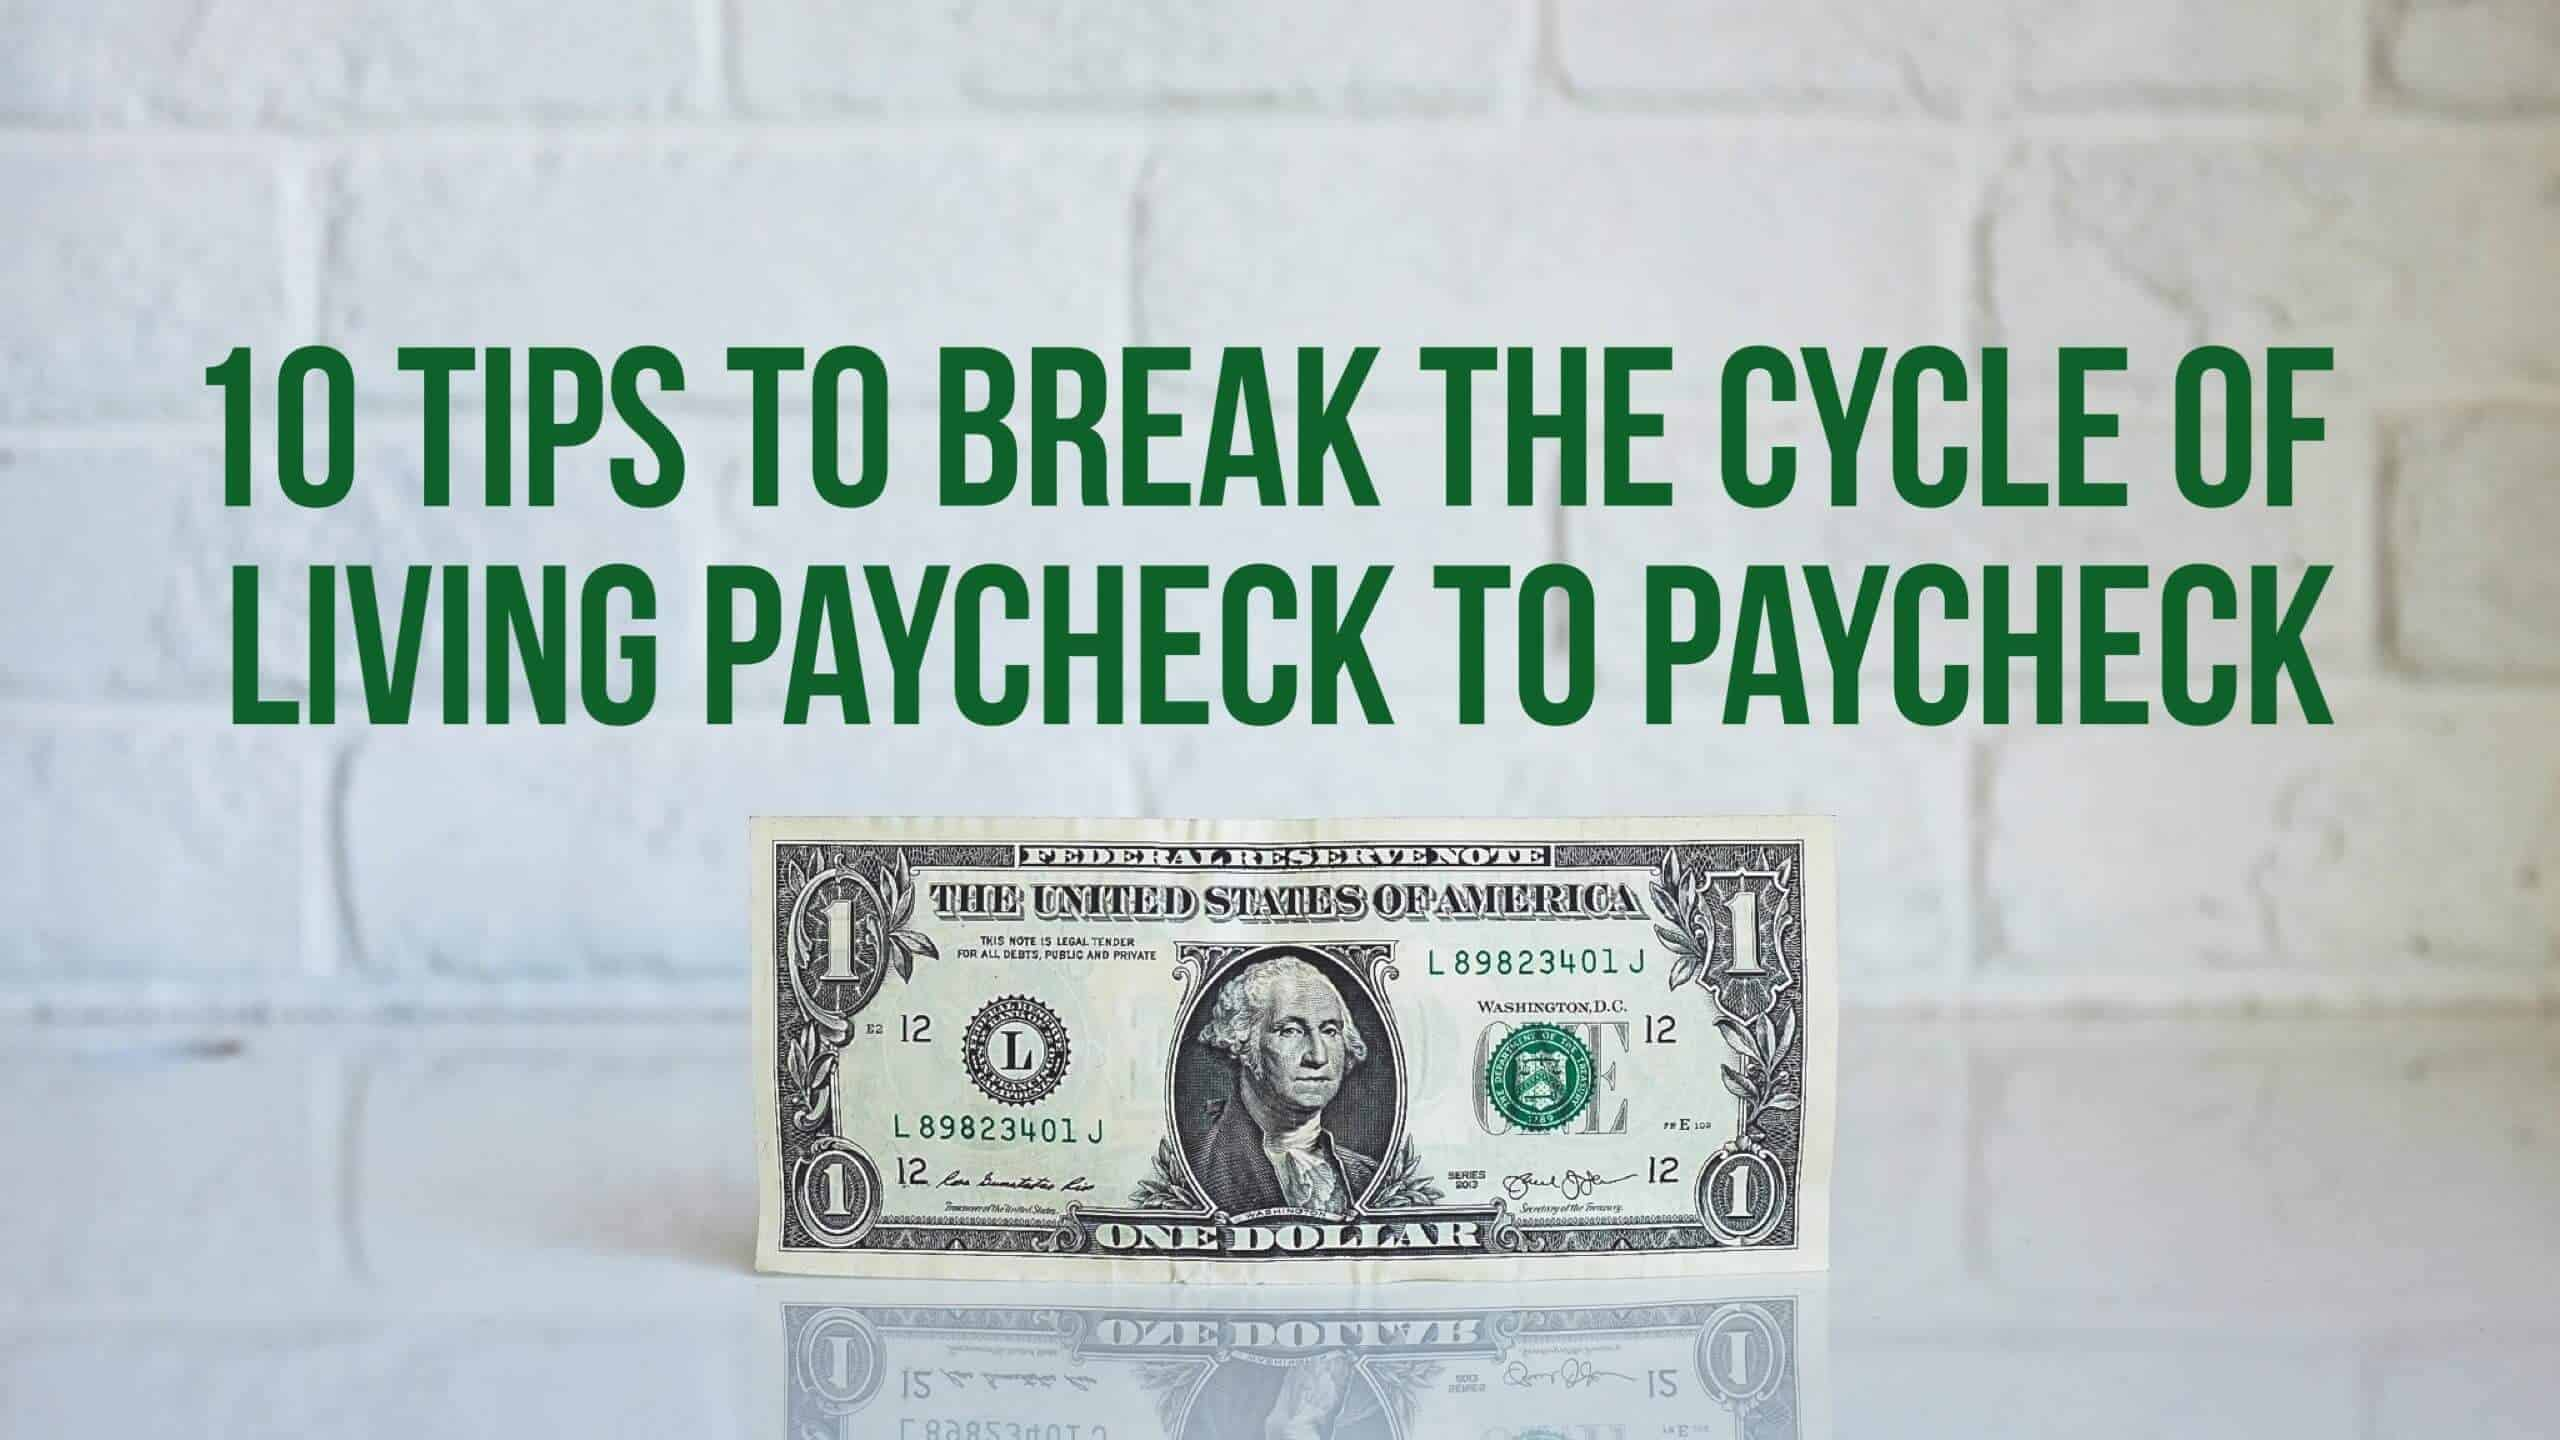 10 Tips to Break the Cycle of Living Paycheck to Paycheck 4